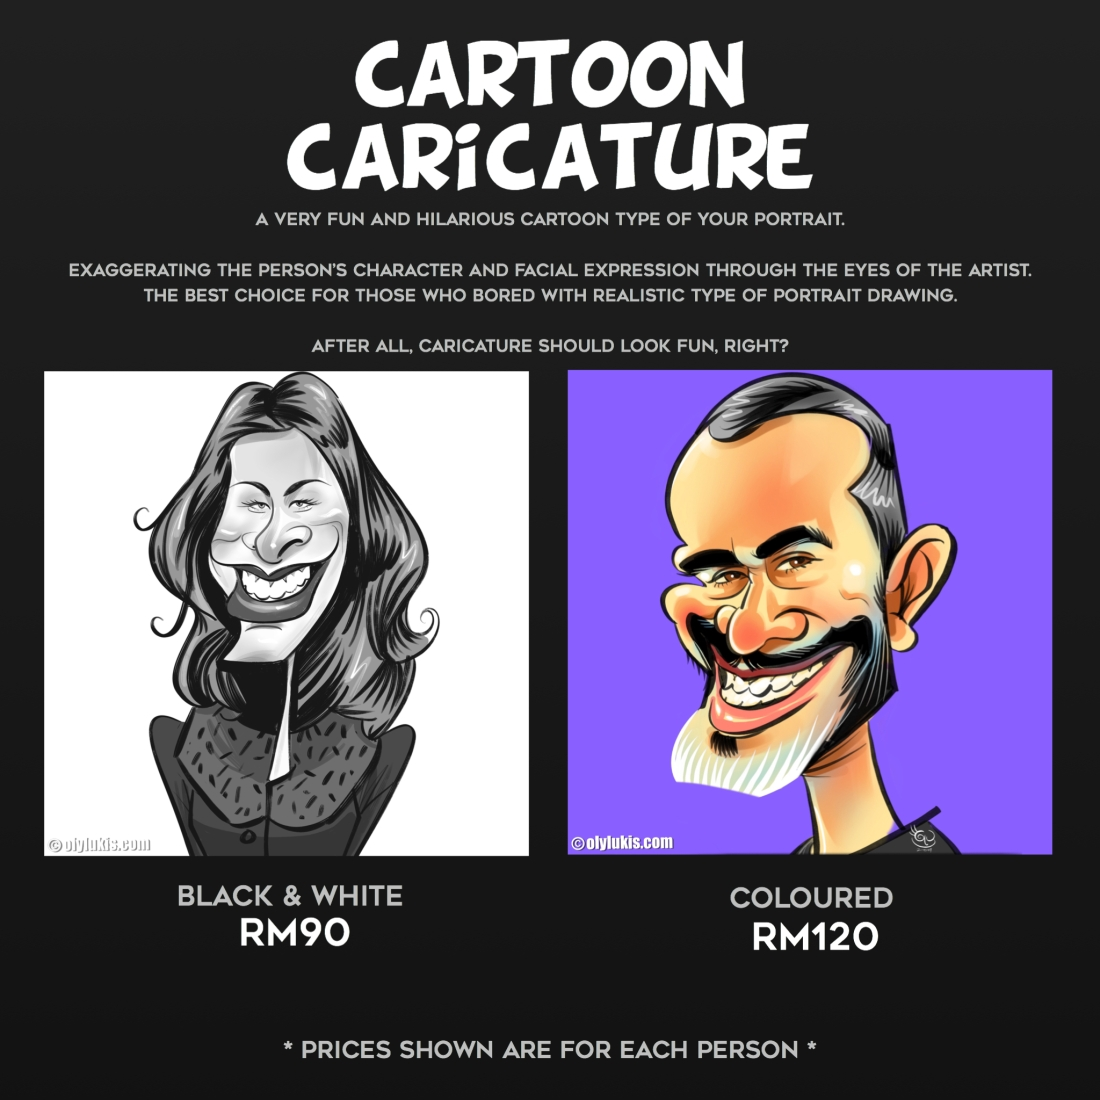 OLYLUKIS CARTOON CARICATURE PRICE